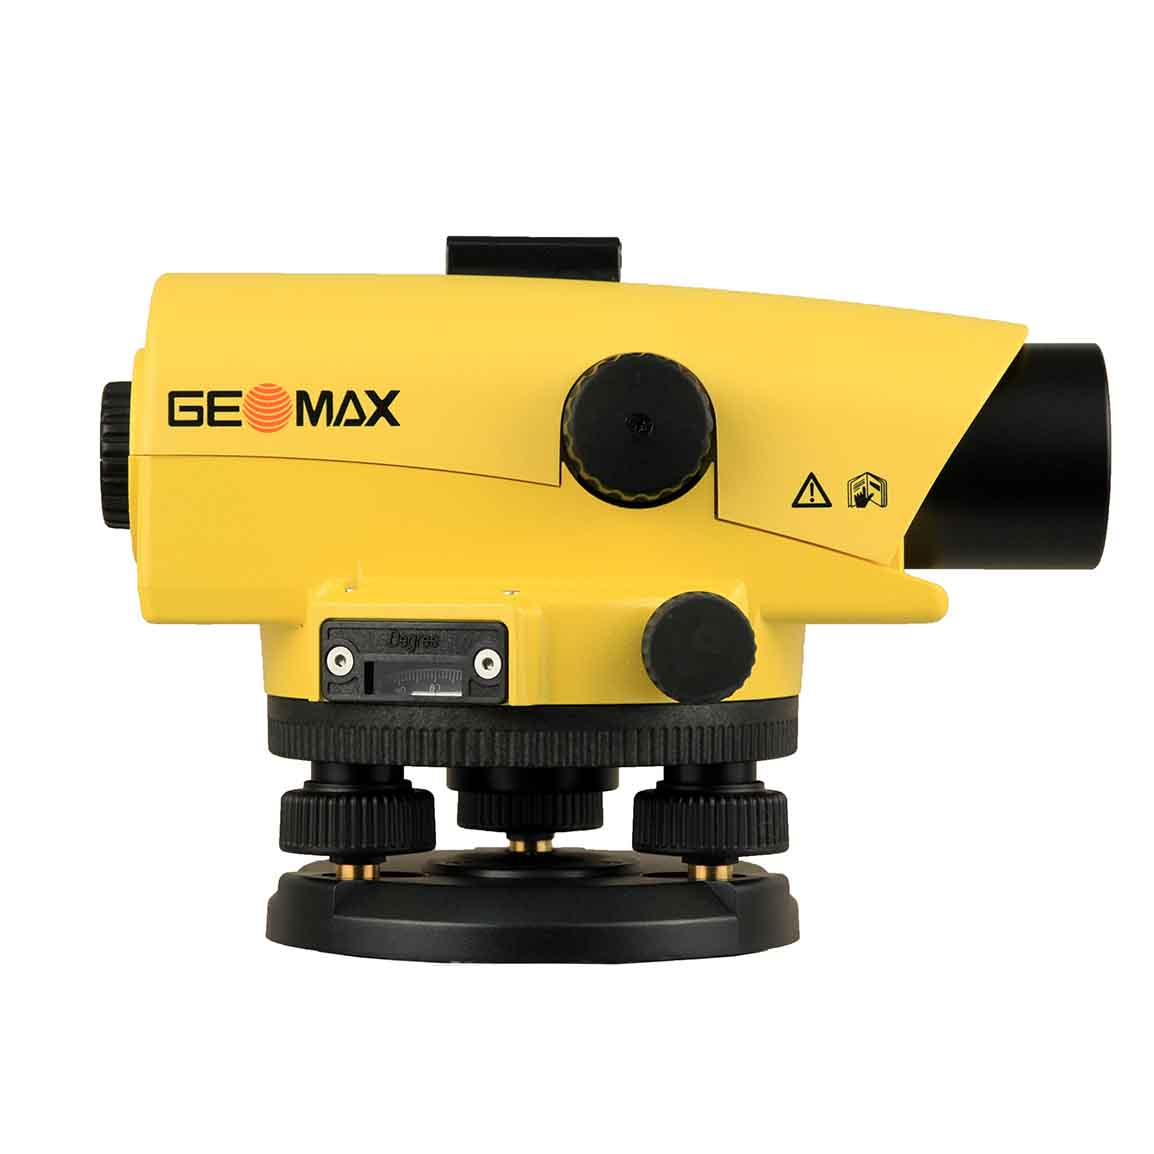 Geomax ZAL320 20x Automatic Level